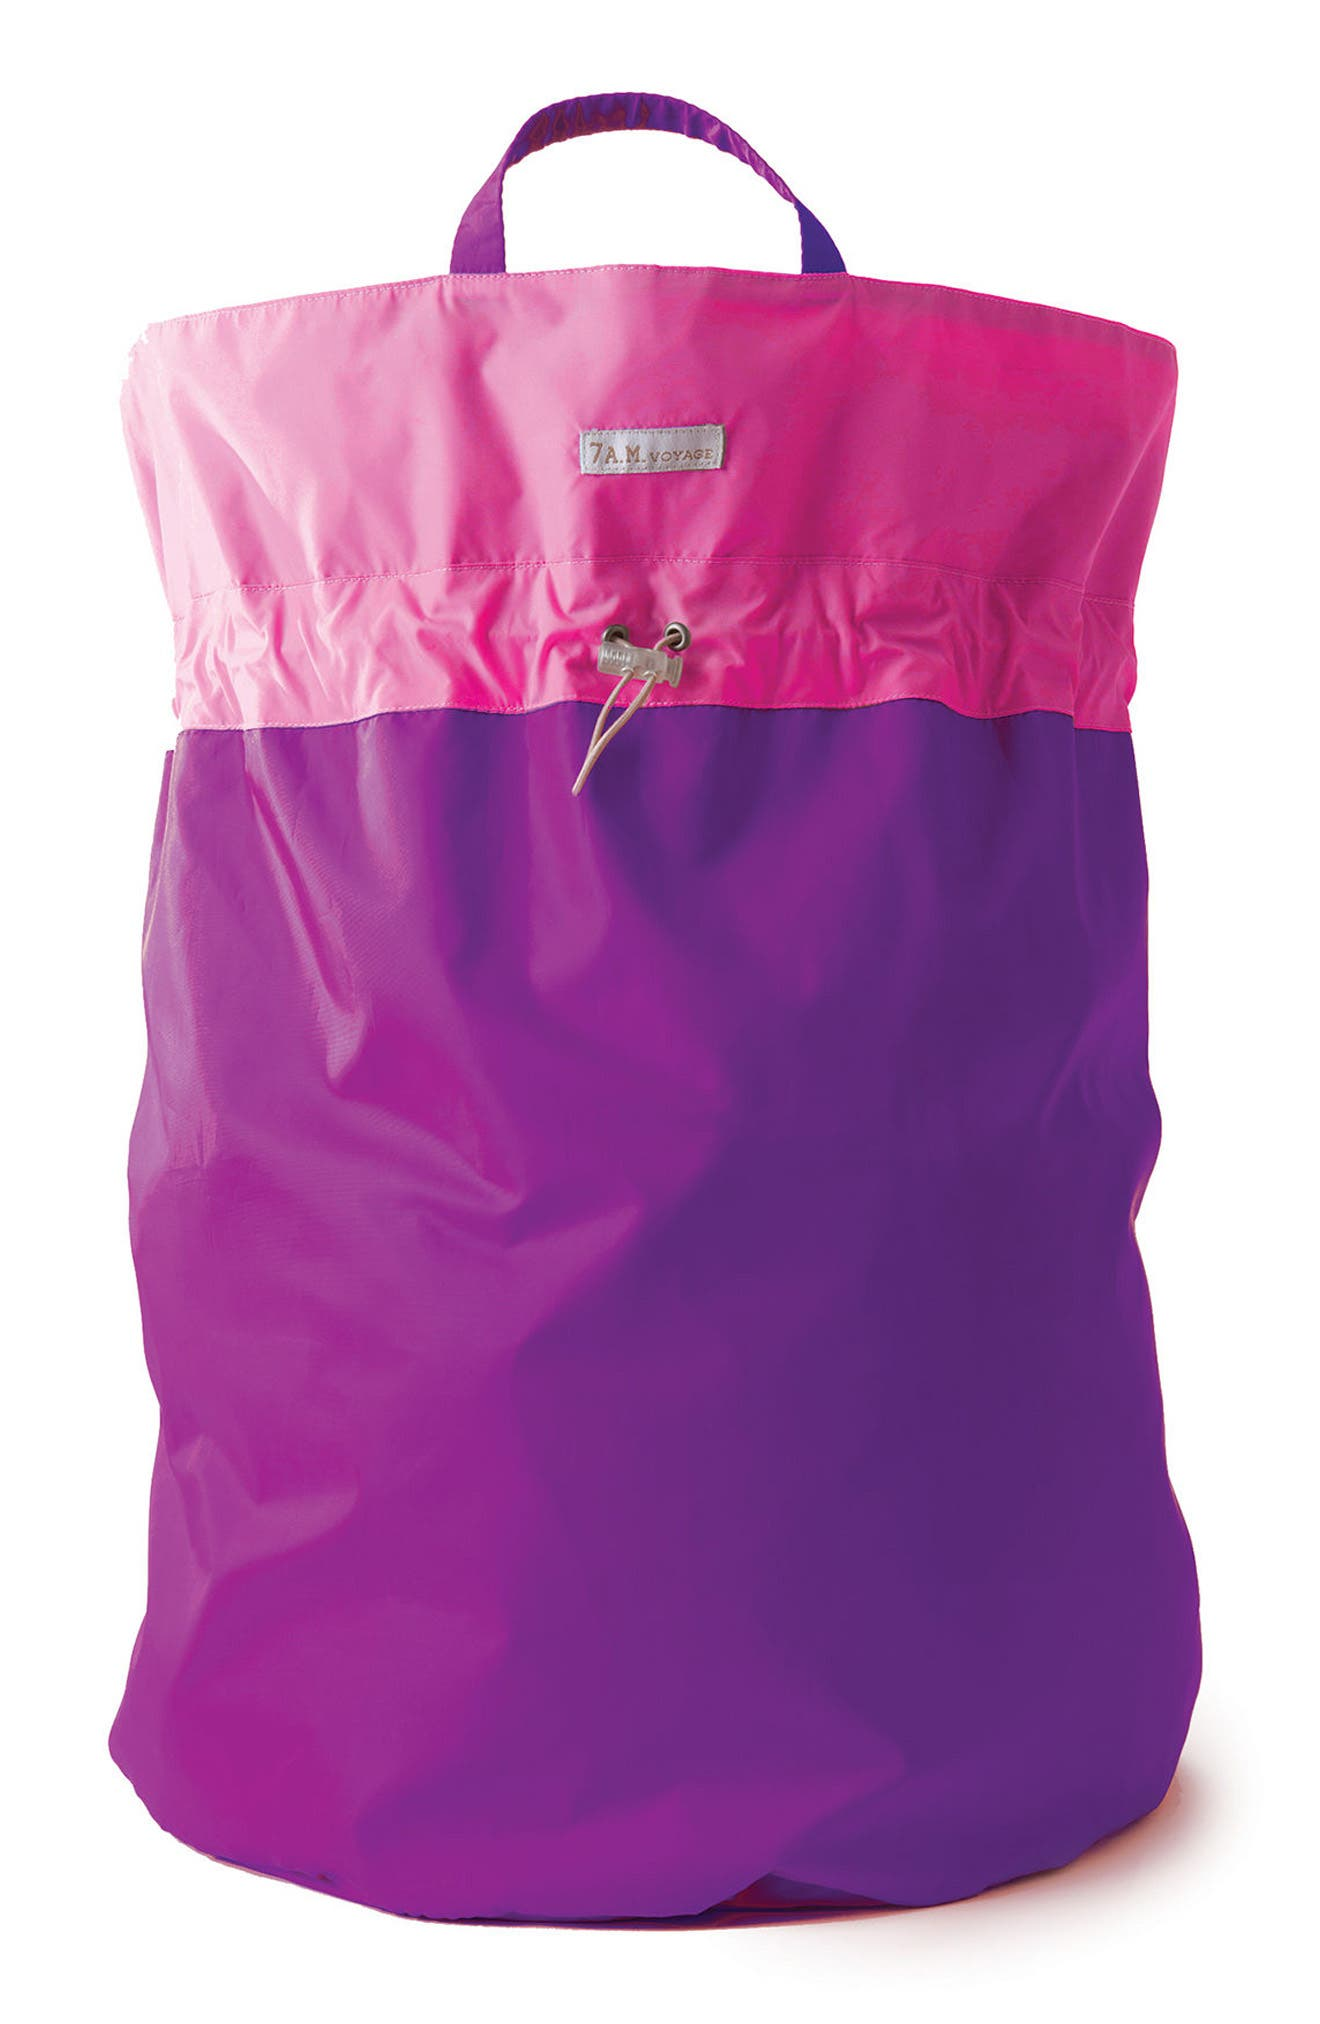 7 A.M. Enfant Water Repellent Hamper Bag